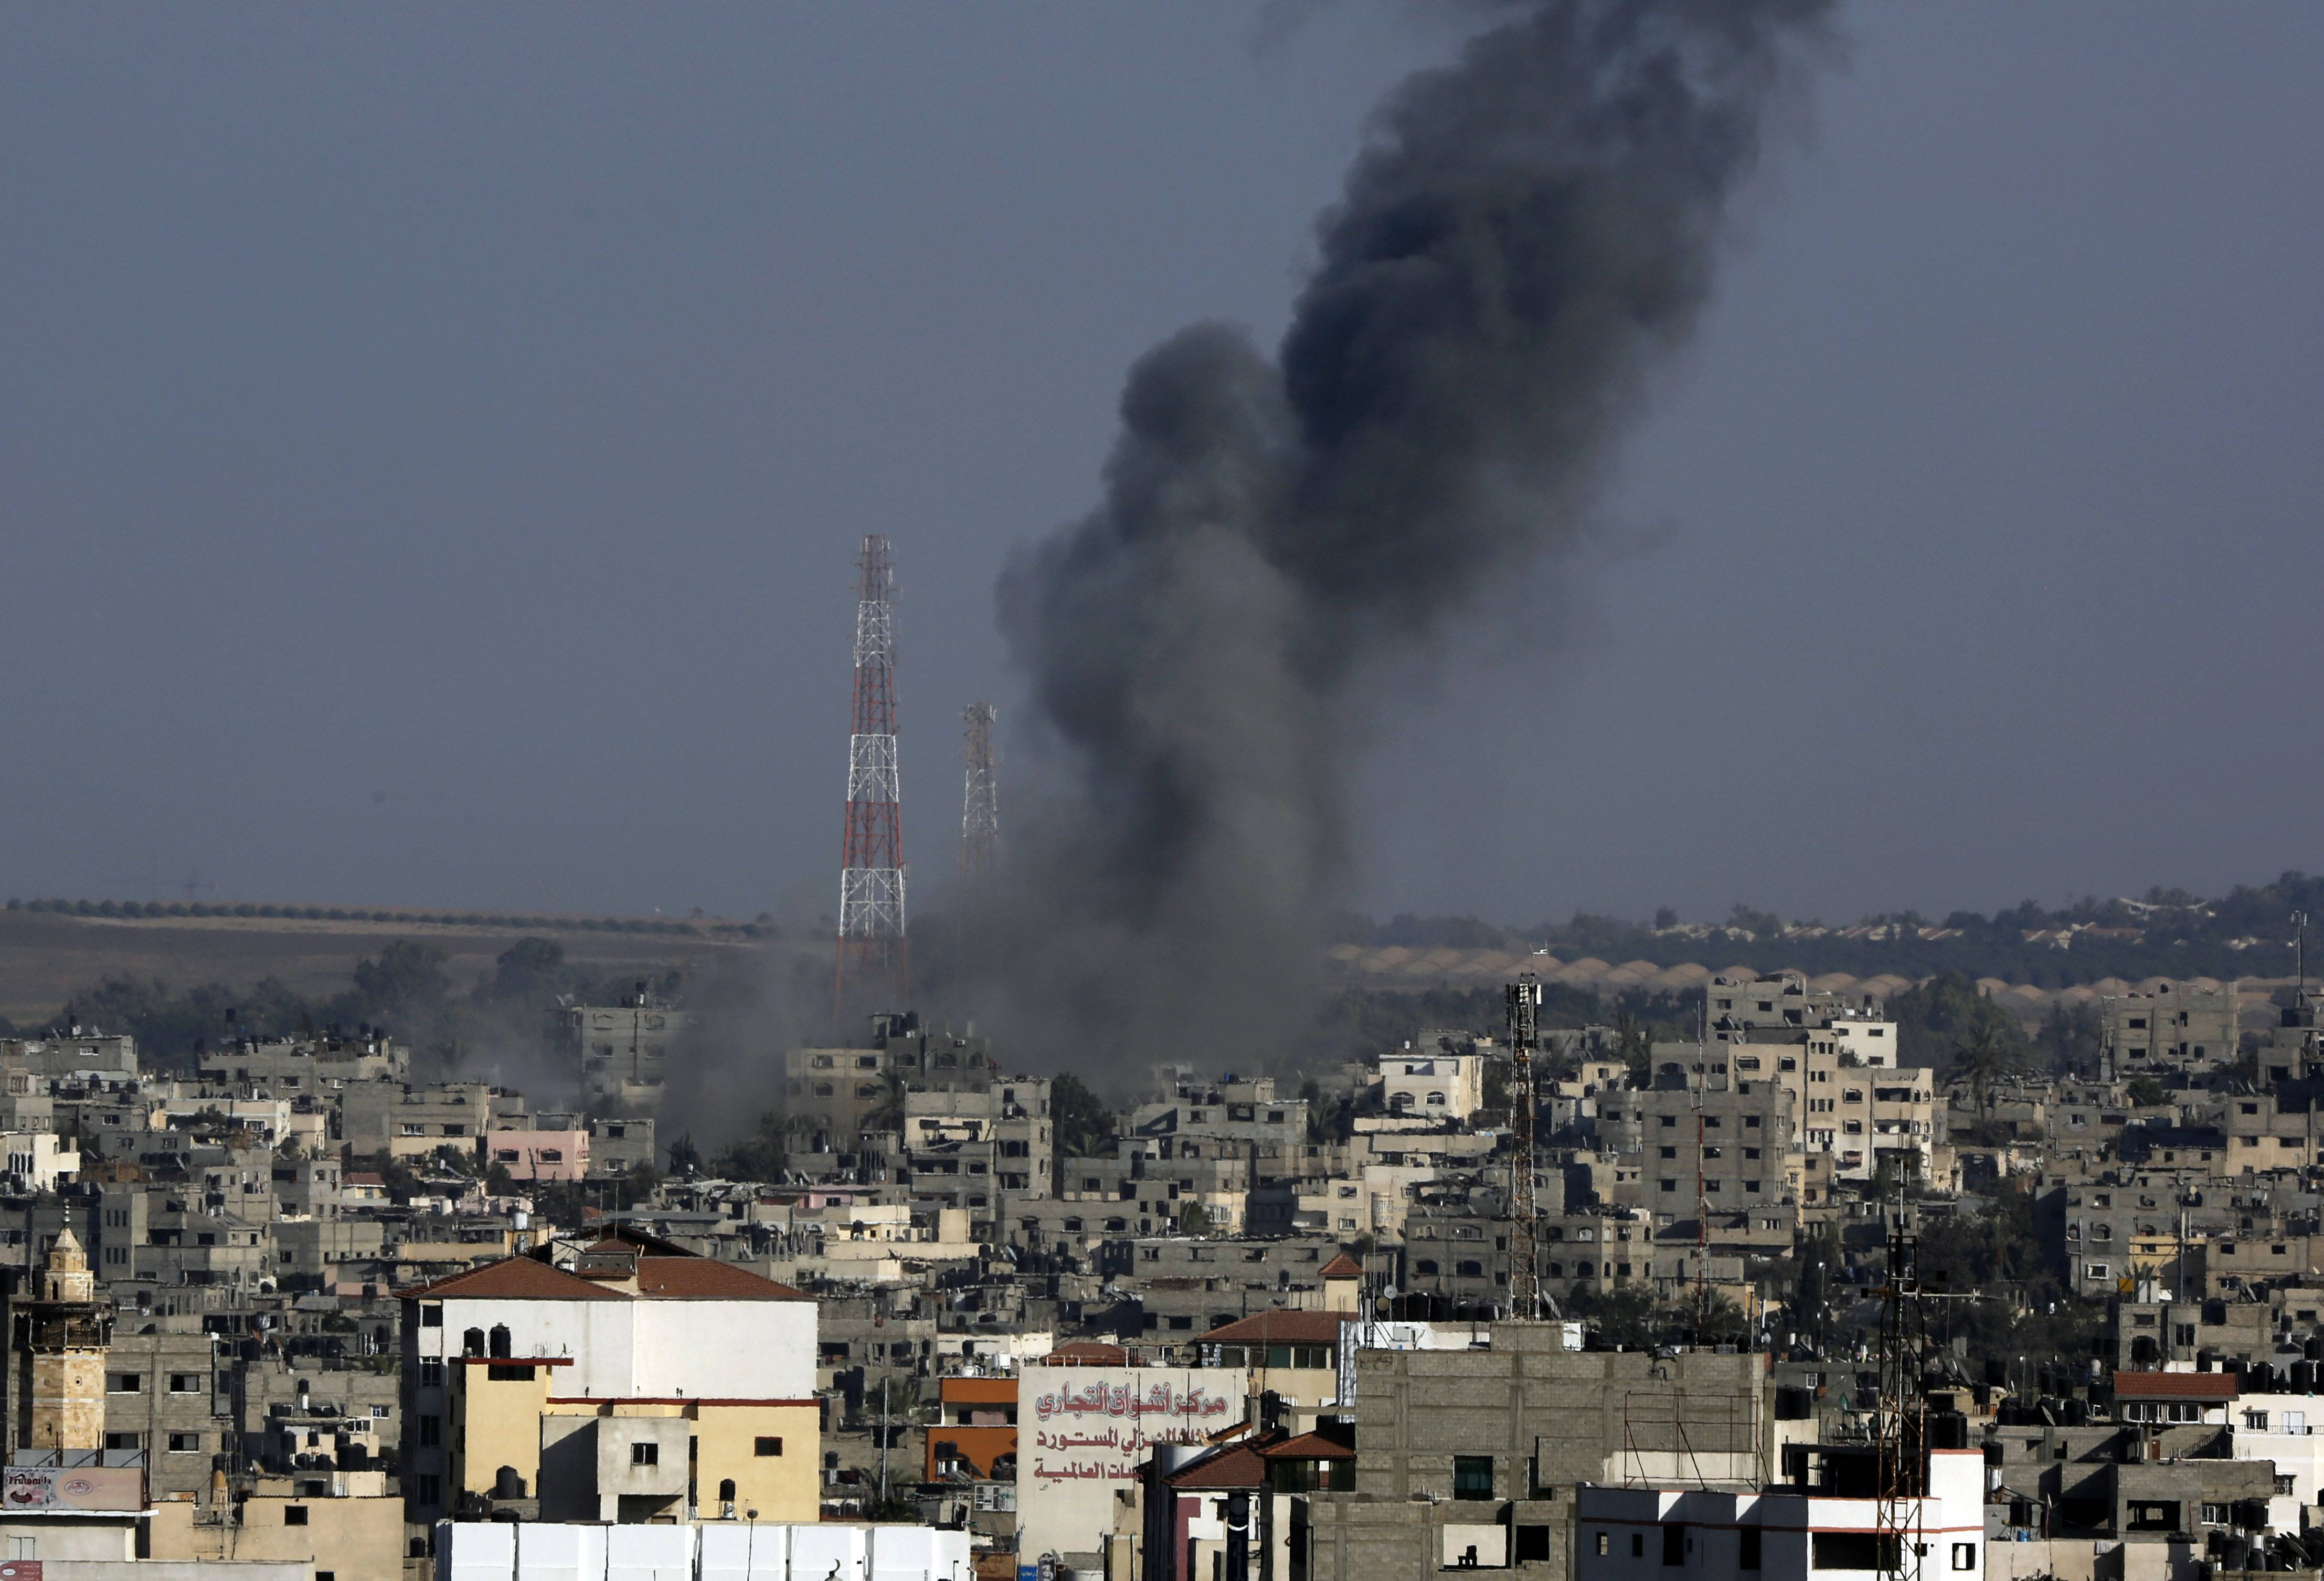 Smoke rises after an Israeli strike hit Gaza City in the northern Gaza Strip, Tuesday, The Israeli military said it carried out a series of airstrikes Tuesday across the Gaza Strip in response to renewed rocket fire, a burst of violence that broke a temporary cease-fire.